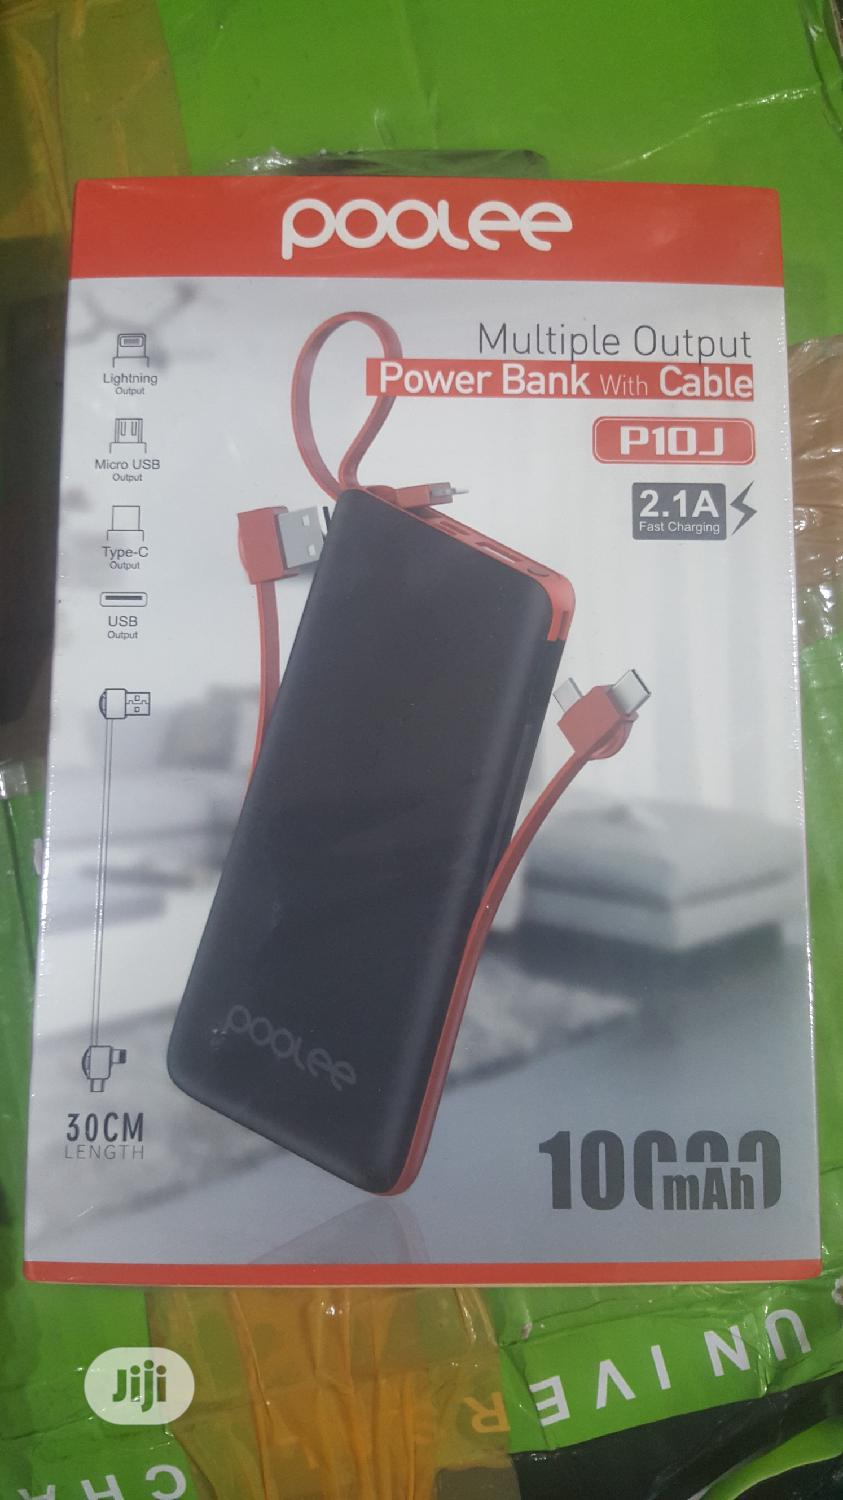 10,000mah Powerbank With Multiple Output (POOLEE)